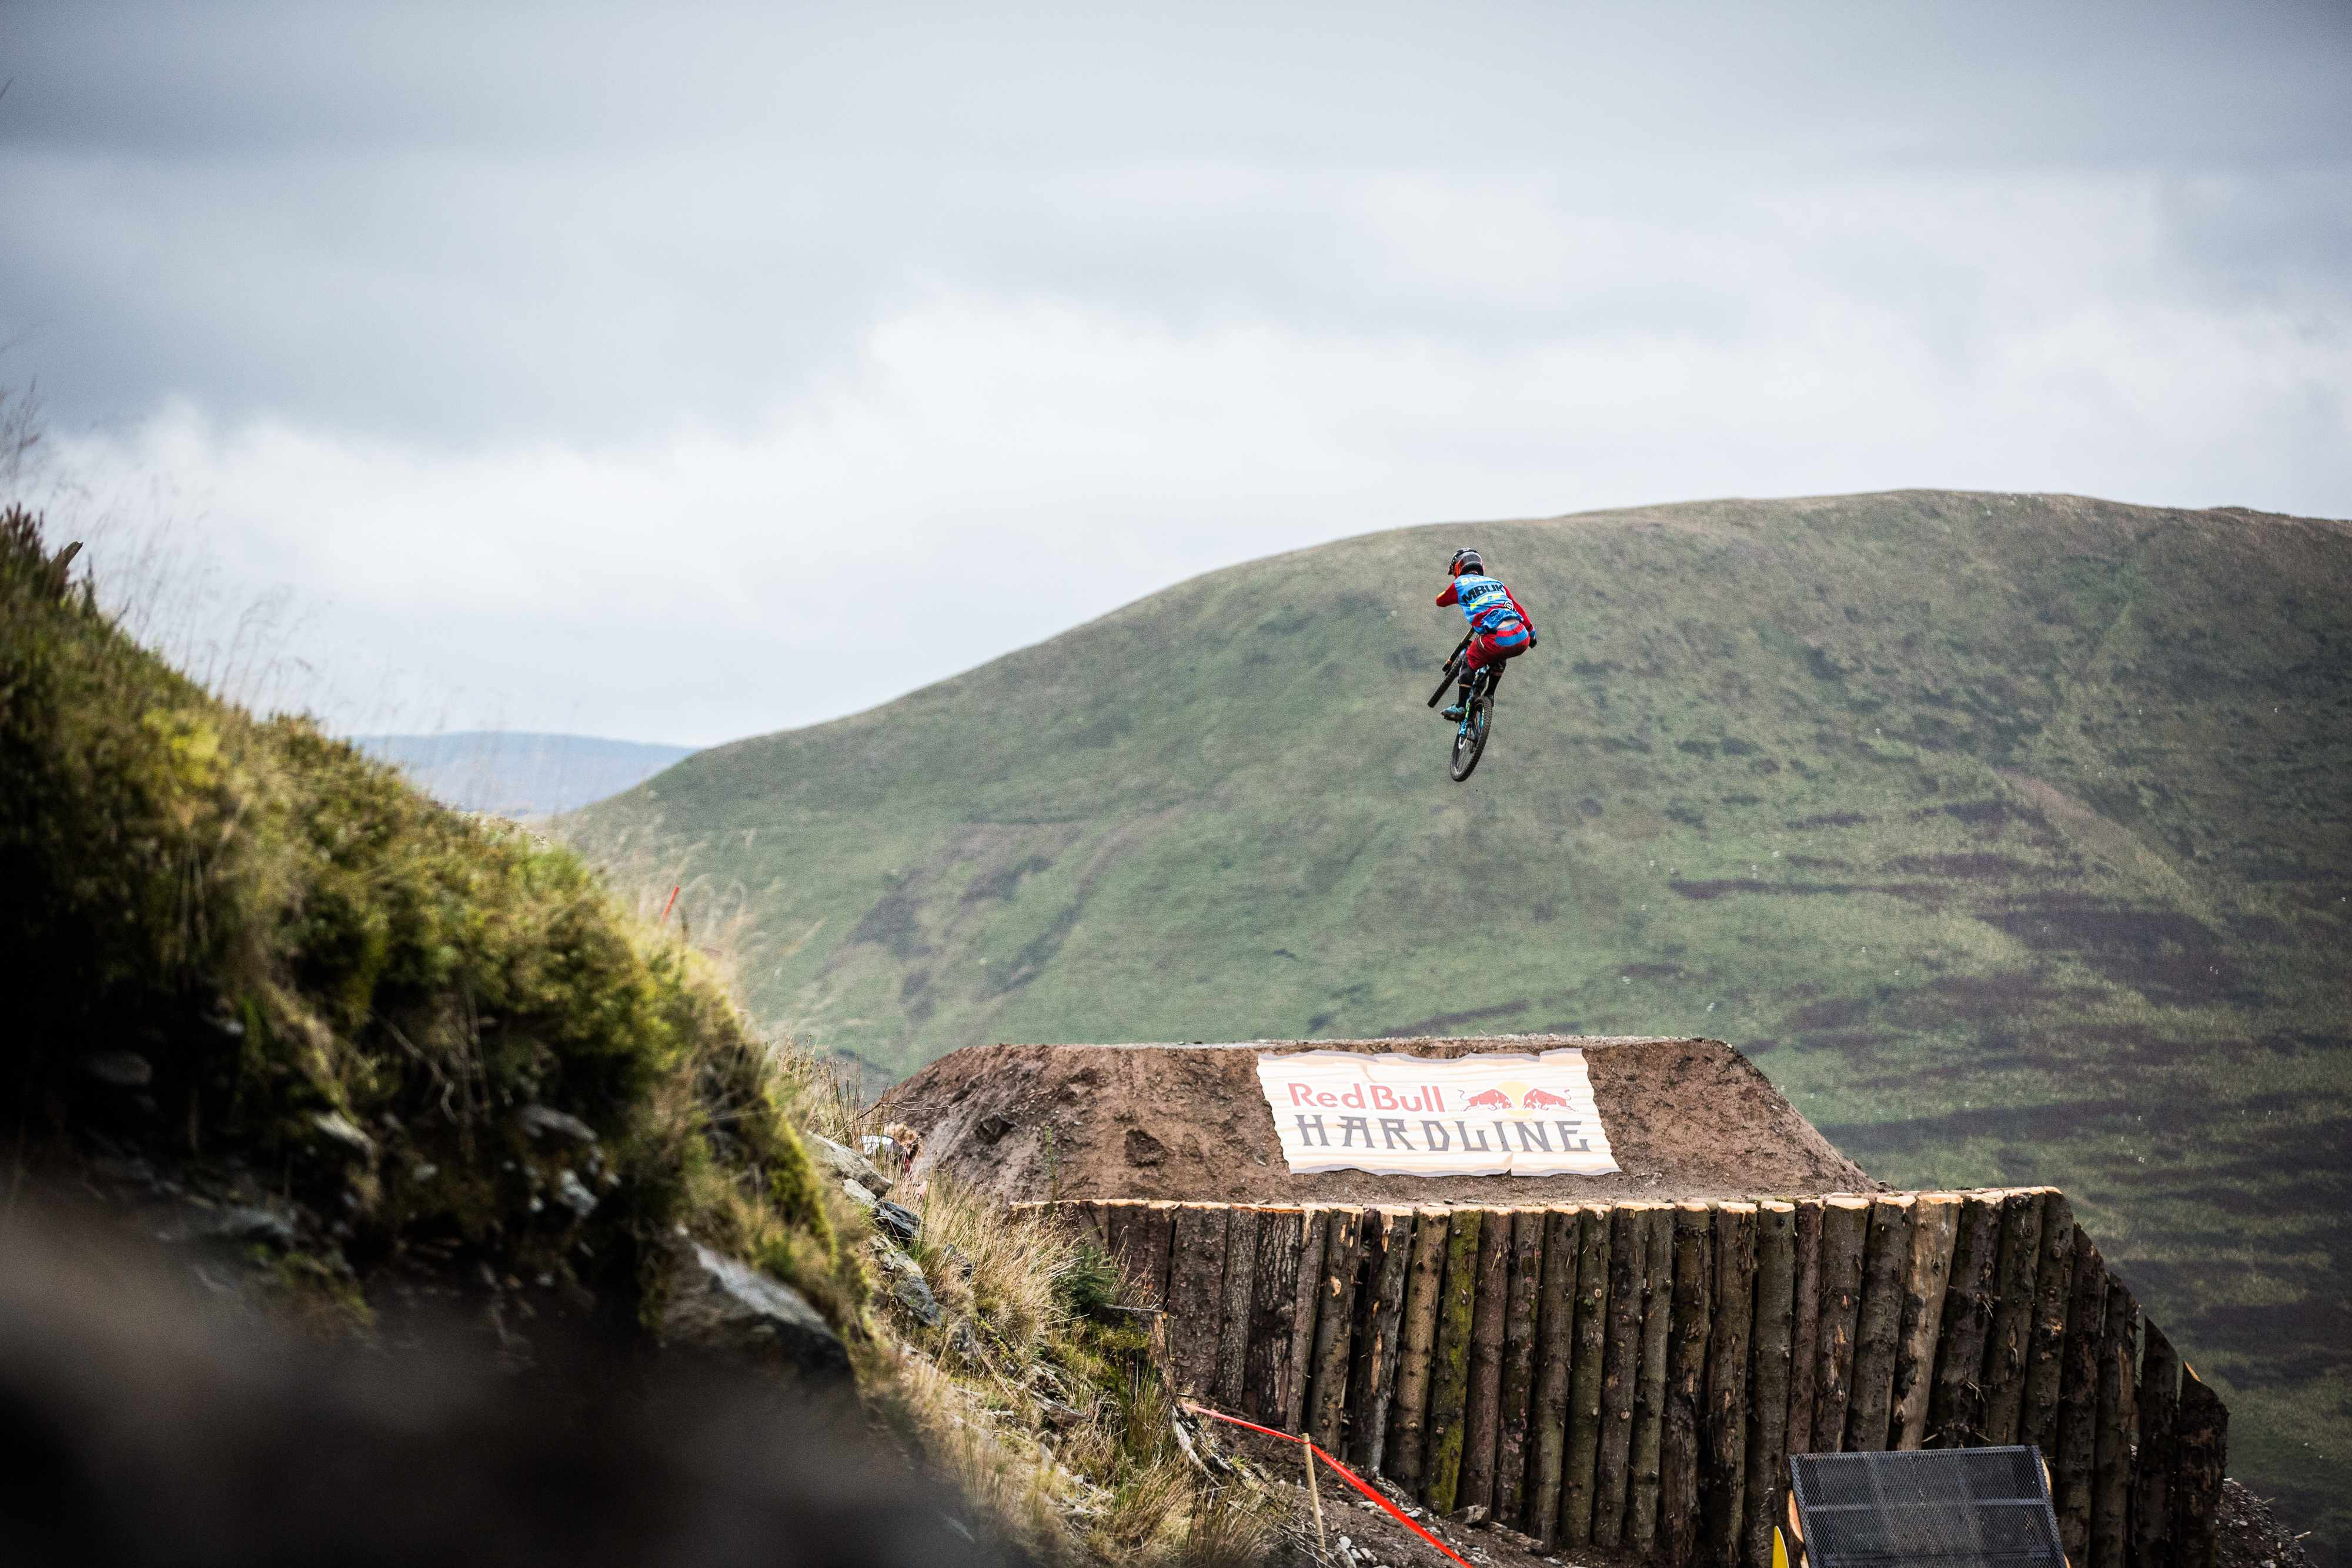 Alex Bond rides the Red Bull Hardline in North Wales